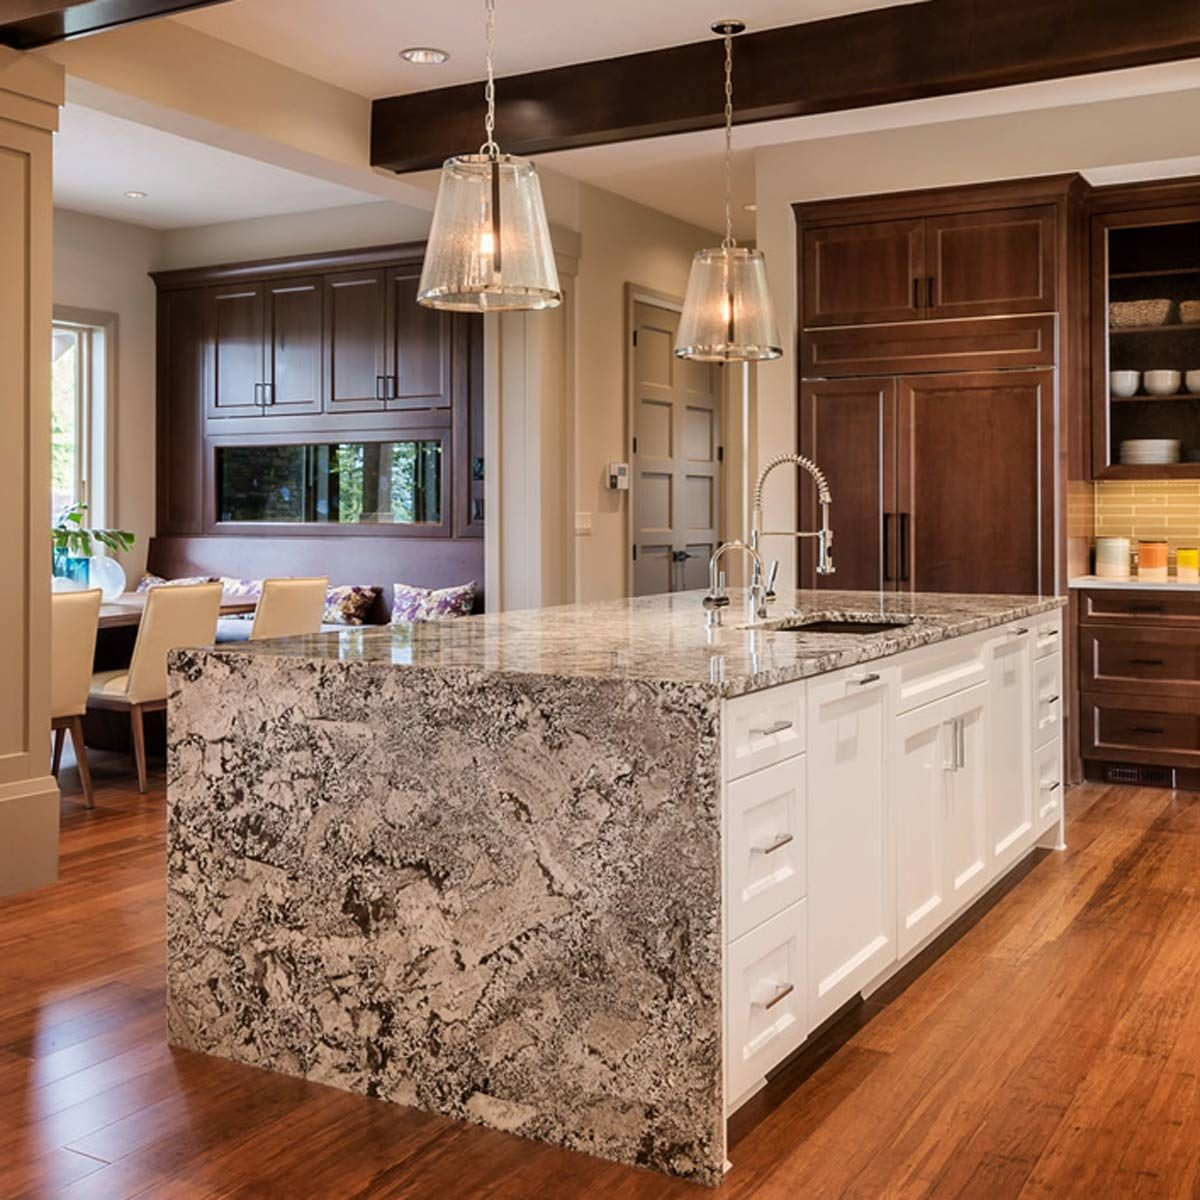 10 Kitchen Countertop Ideas People Are Doing Right Now ... on Countertop Decor  id=37354